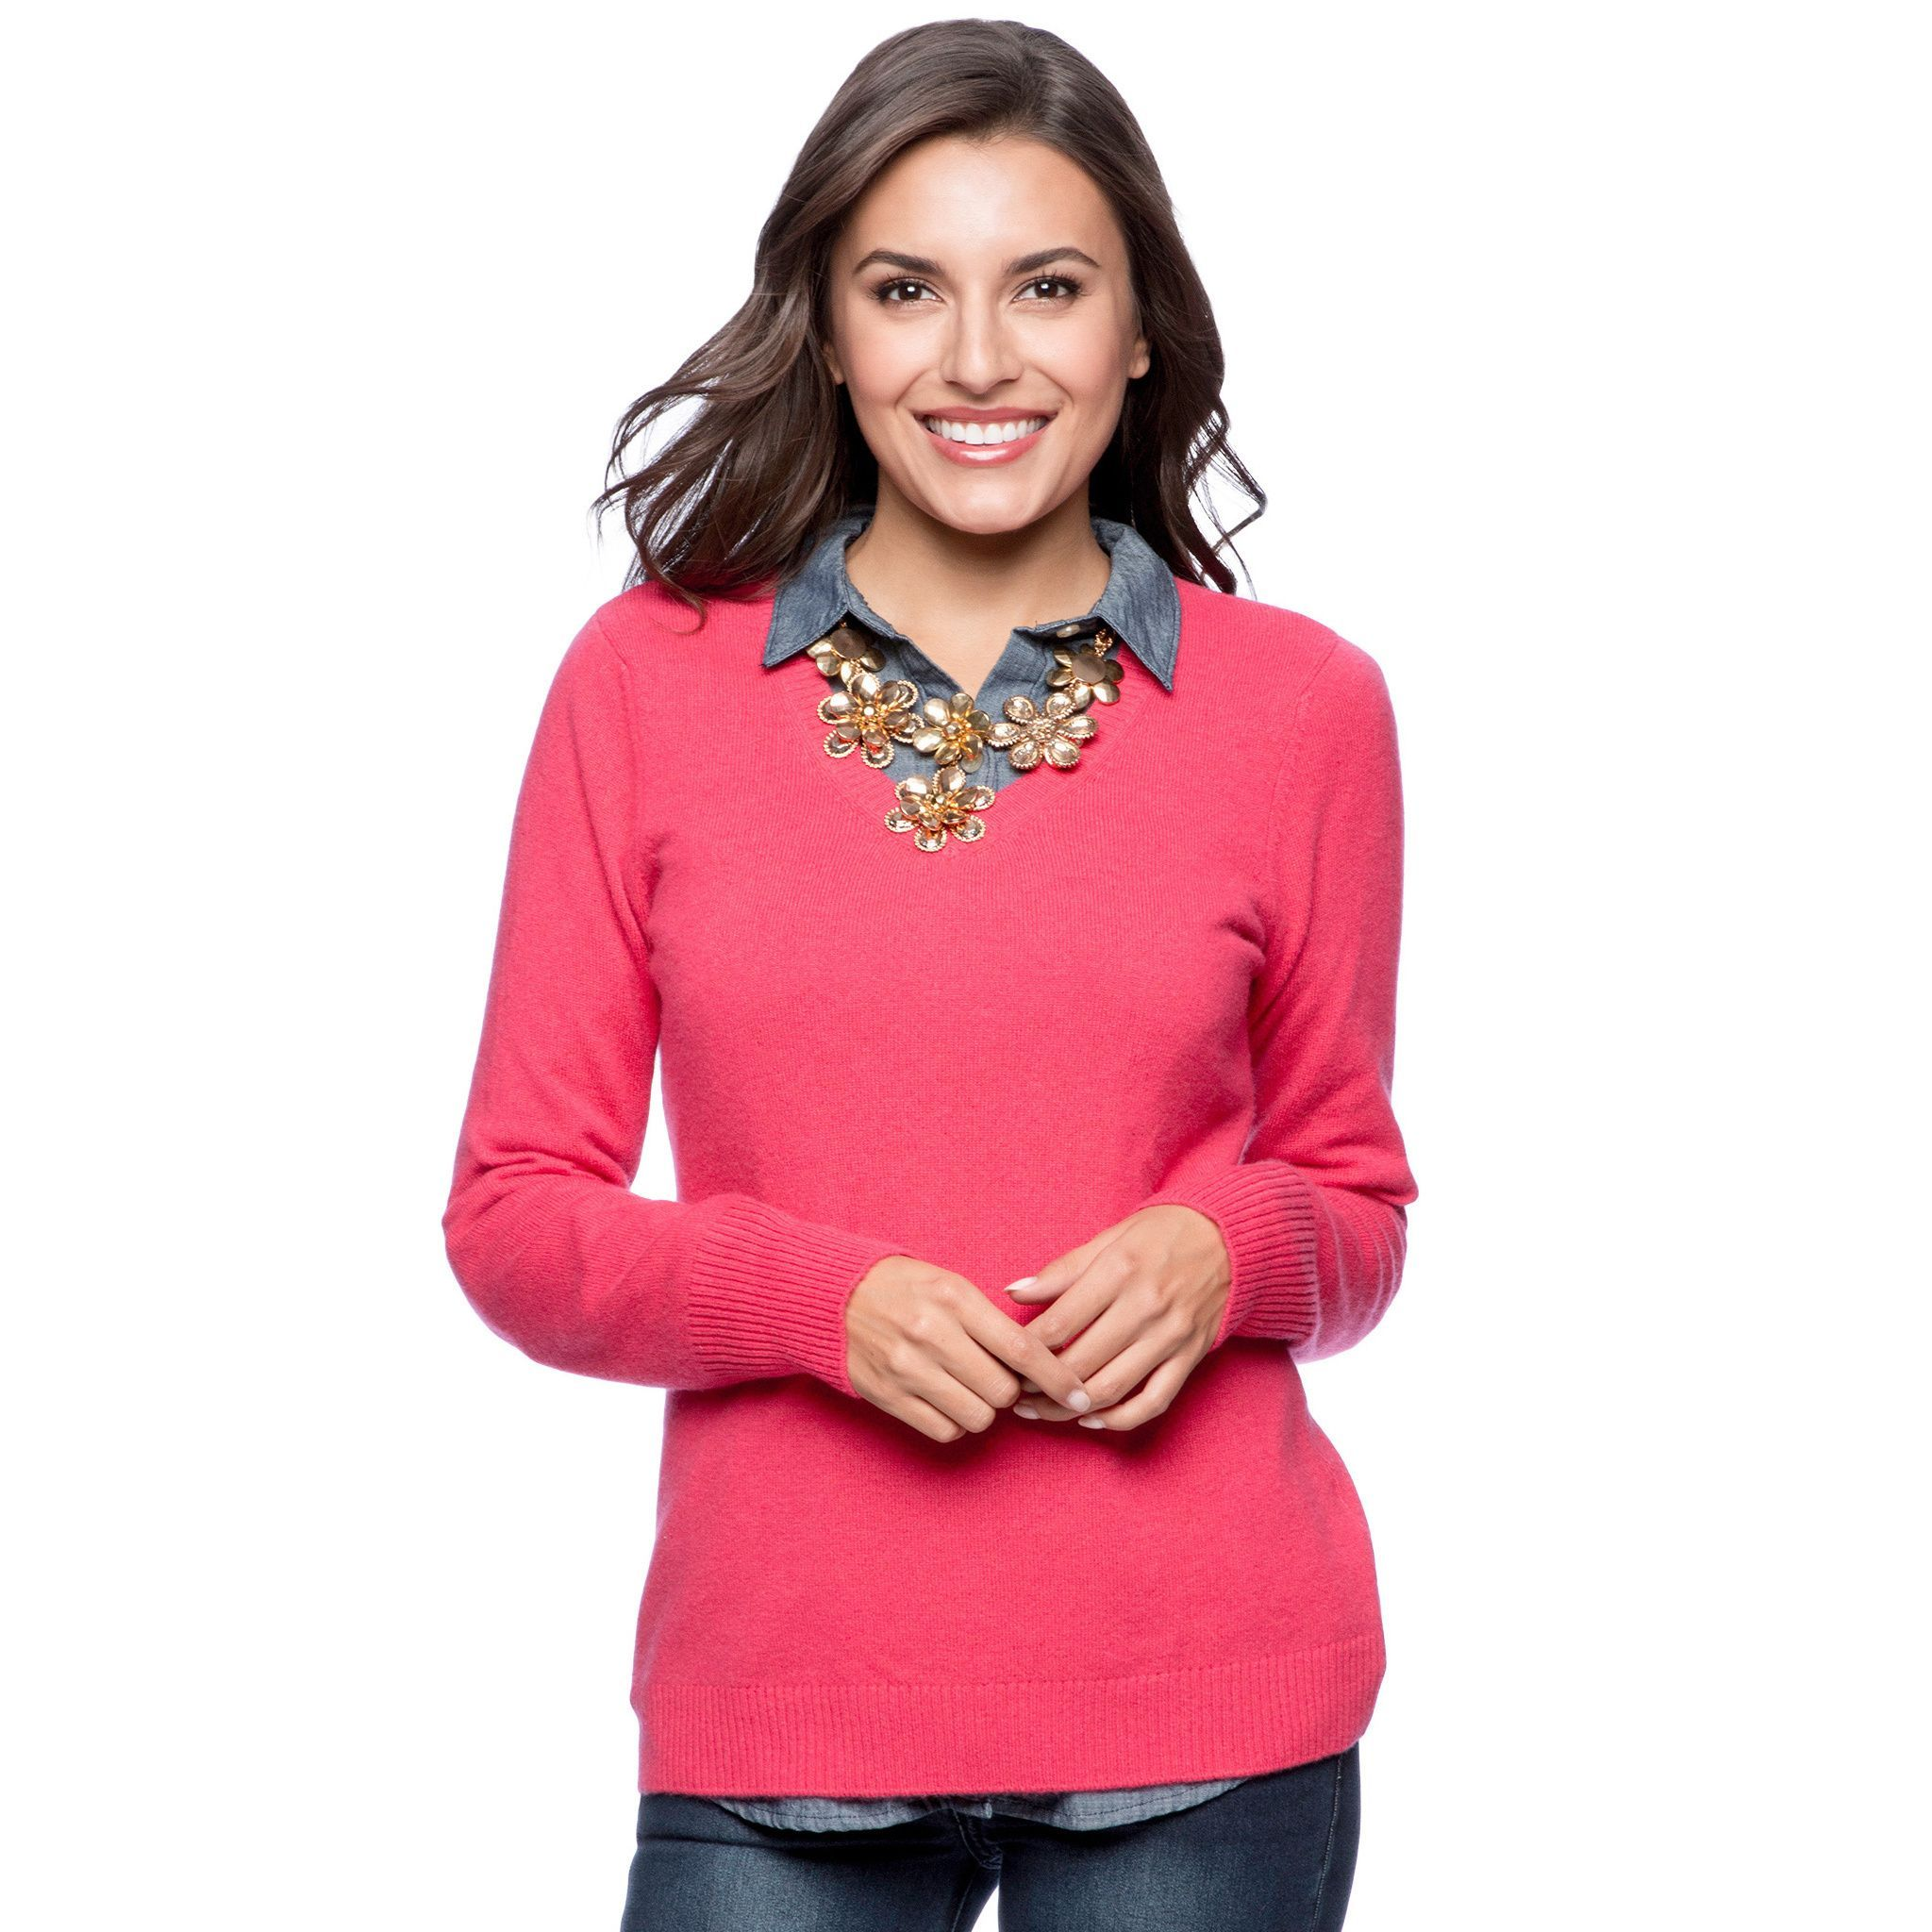 d6c8e1ea4f774 Wrap yourself in luxury when you wear this V-neck sweater made of  100-percent cashmere. This long sleeve top can be layered in the cooler  seasons or worn ...